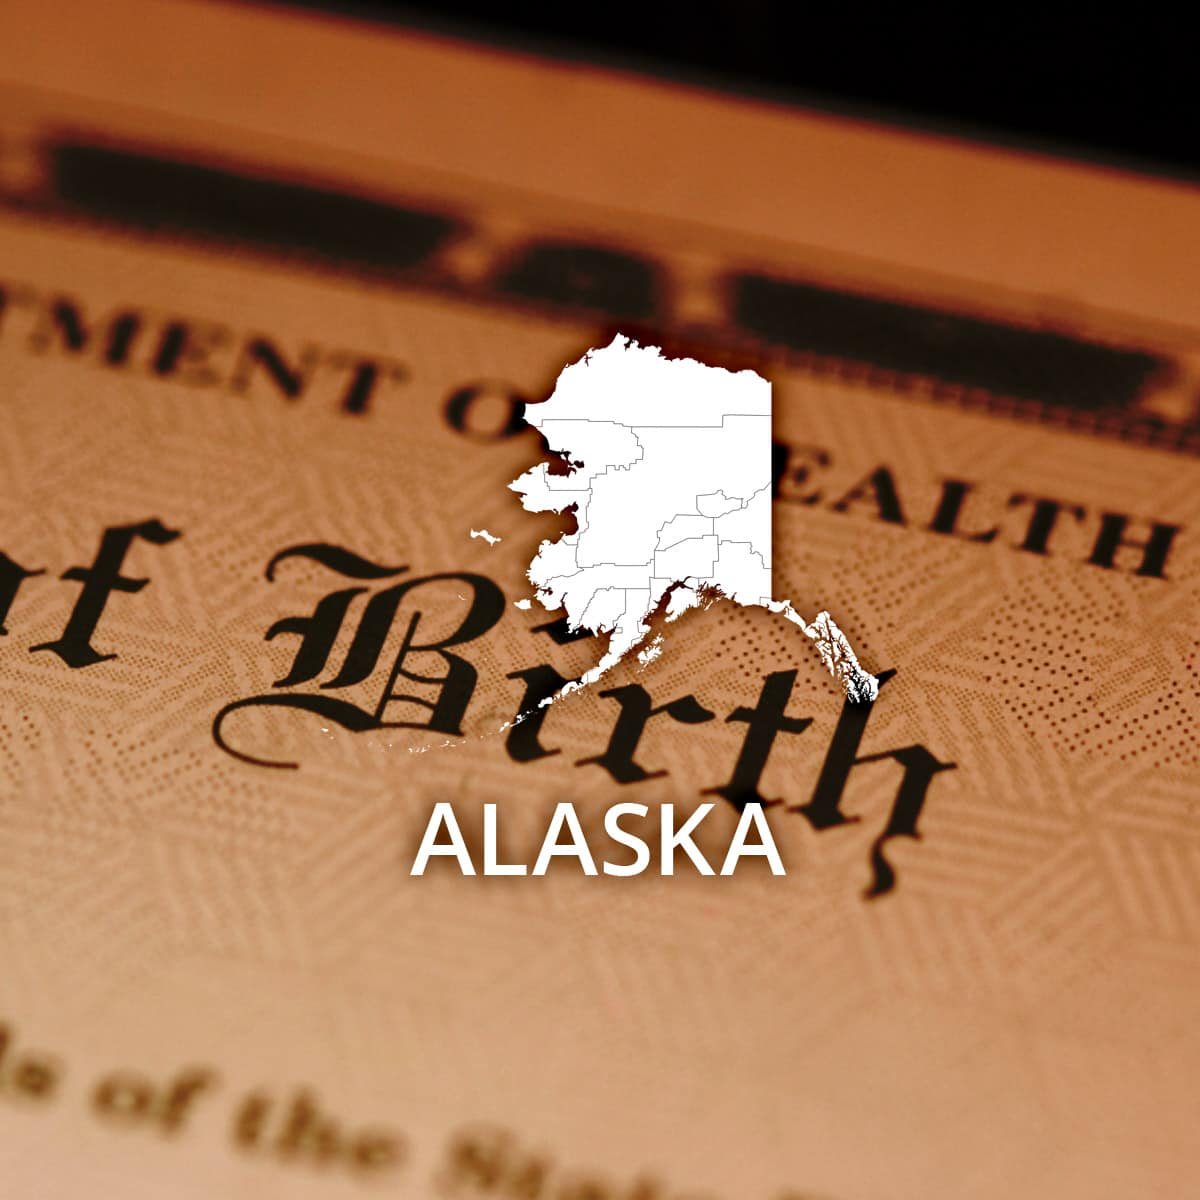 Where to Obtain a Alaska Birth Certificate